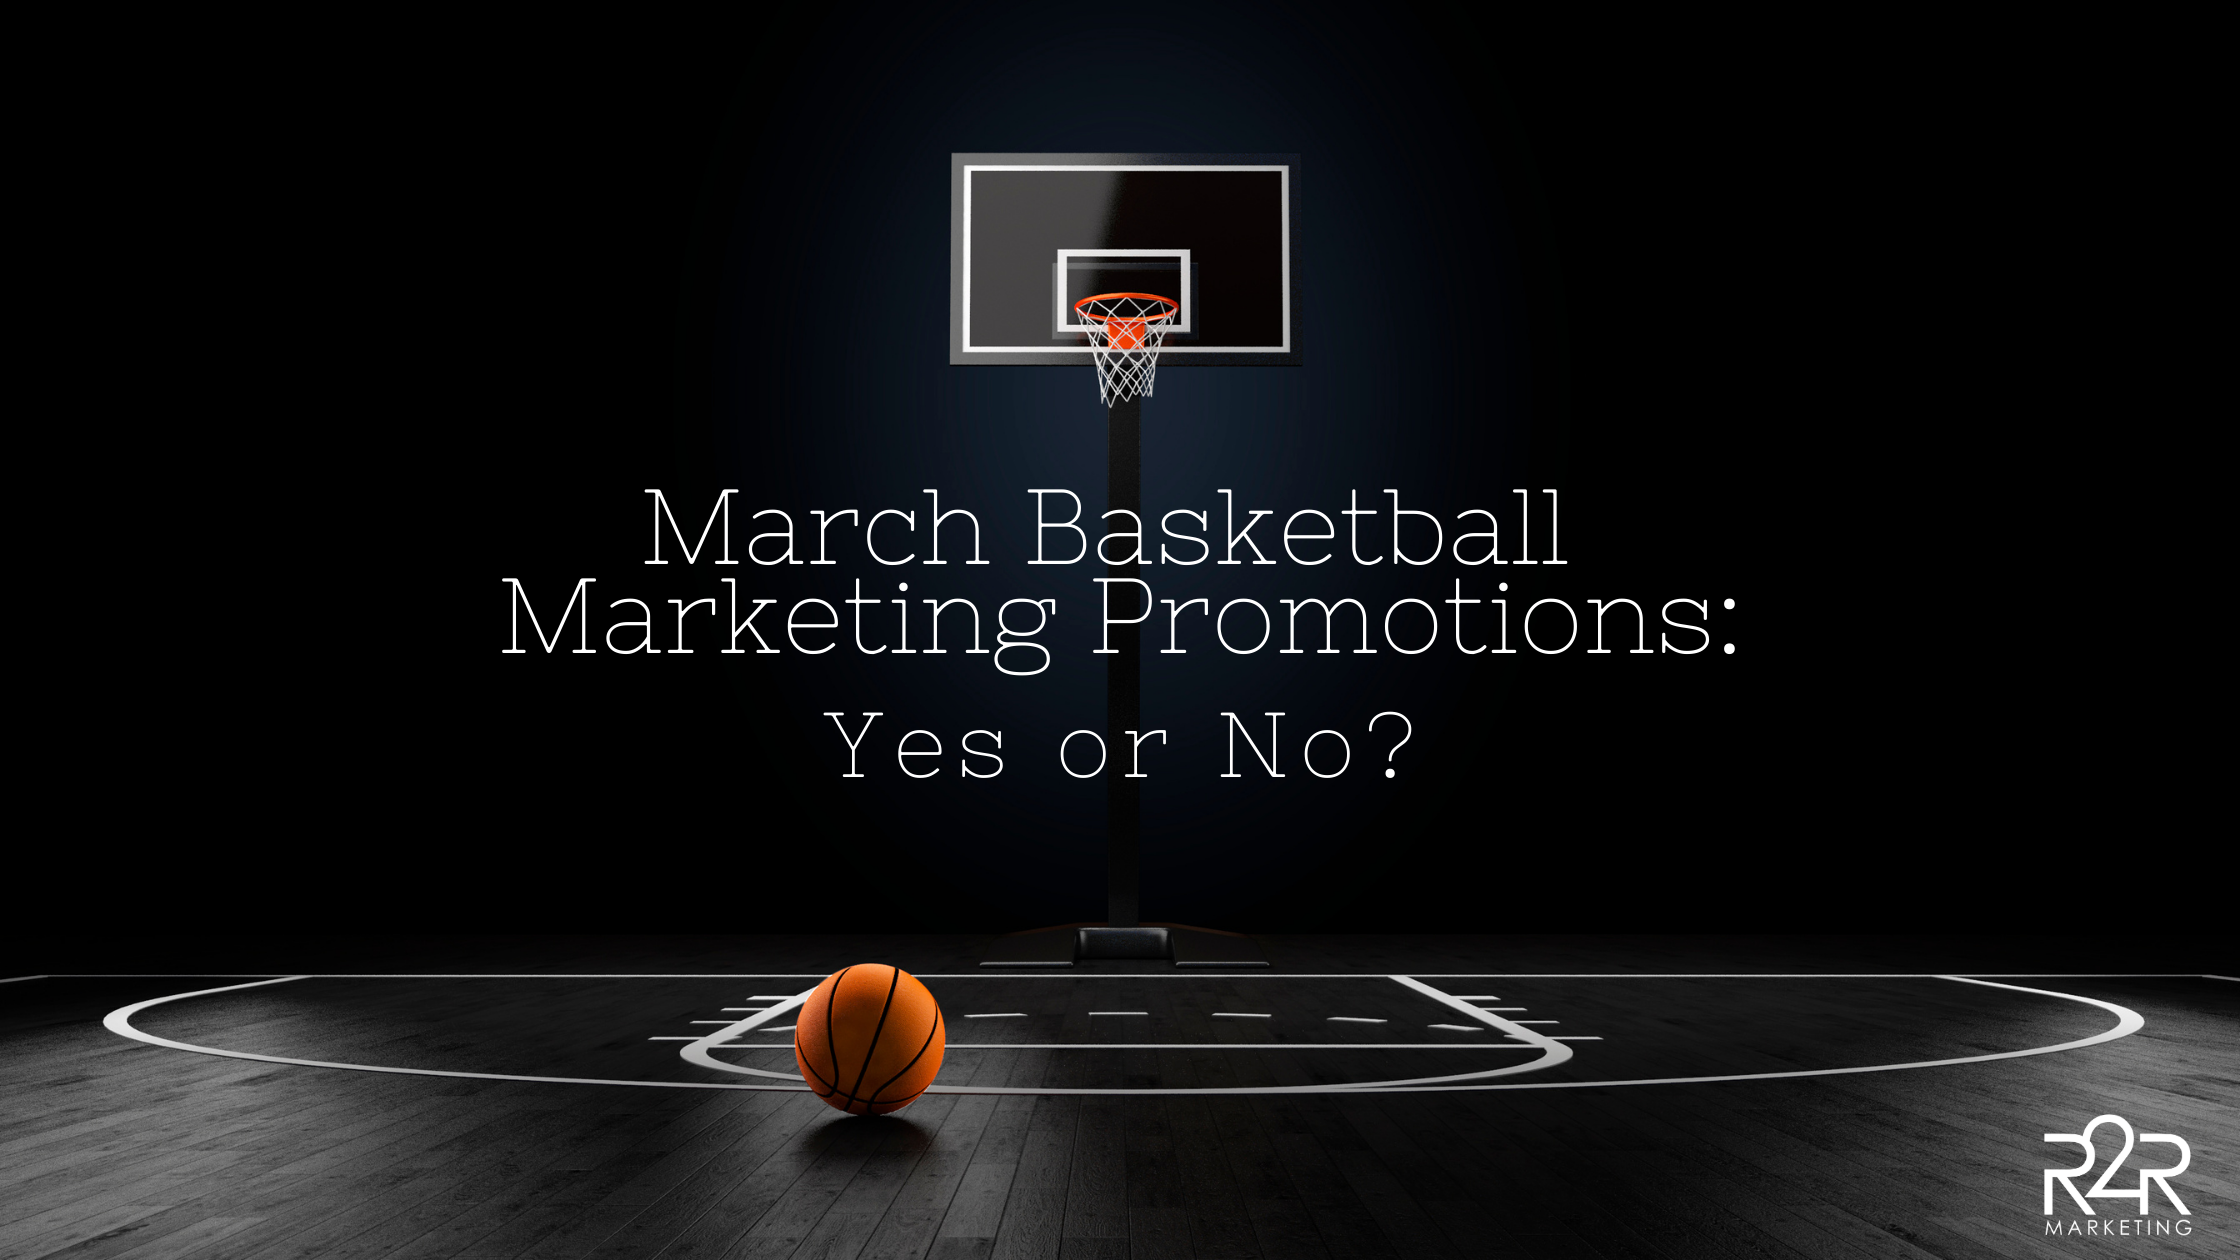 March Basketball Marketing Promotions